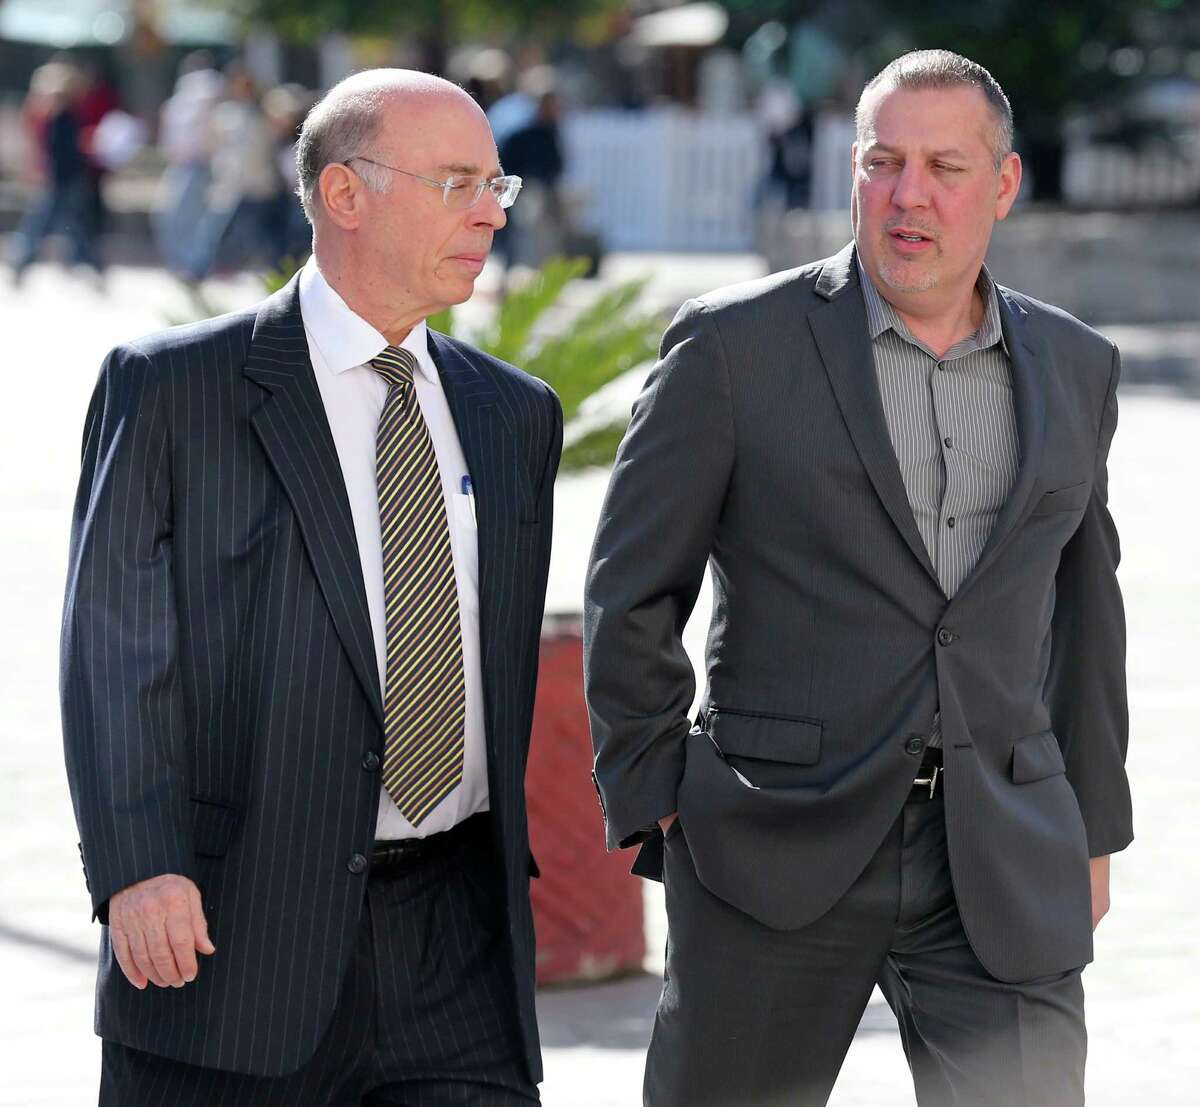 """Attorney Martin Seidler (left) and Stan Bates walk into the Hipolito F. Garcia Federal Building to attend a bankruptcy court hearing. Bates, who was majority owner of San Antonio frac sand company FourWinds Logistics, has been accused of using investor money to support a """"wild lifestyle,"""" according to a court document. Bates has disputed the allegation."""